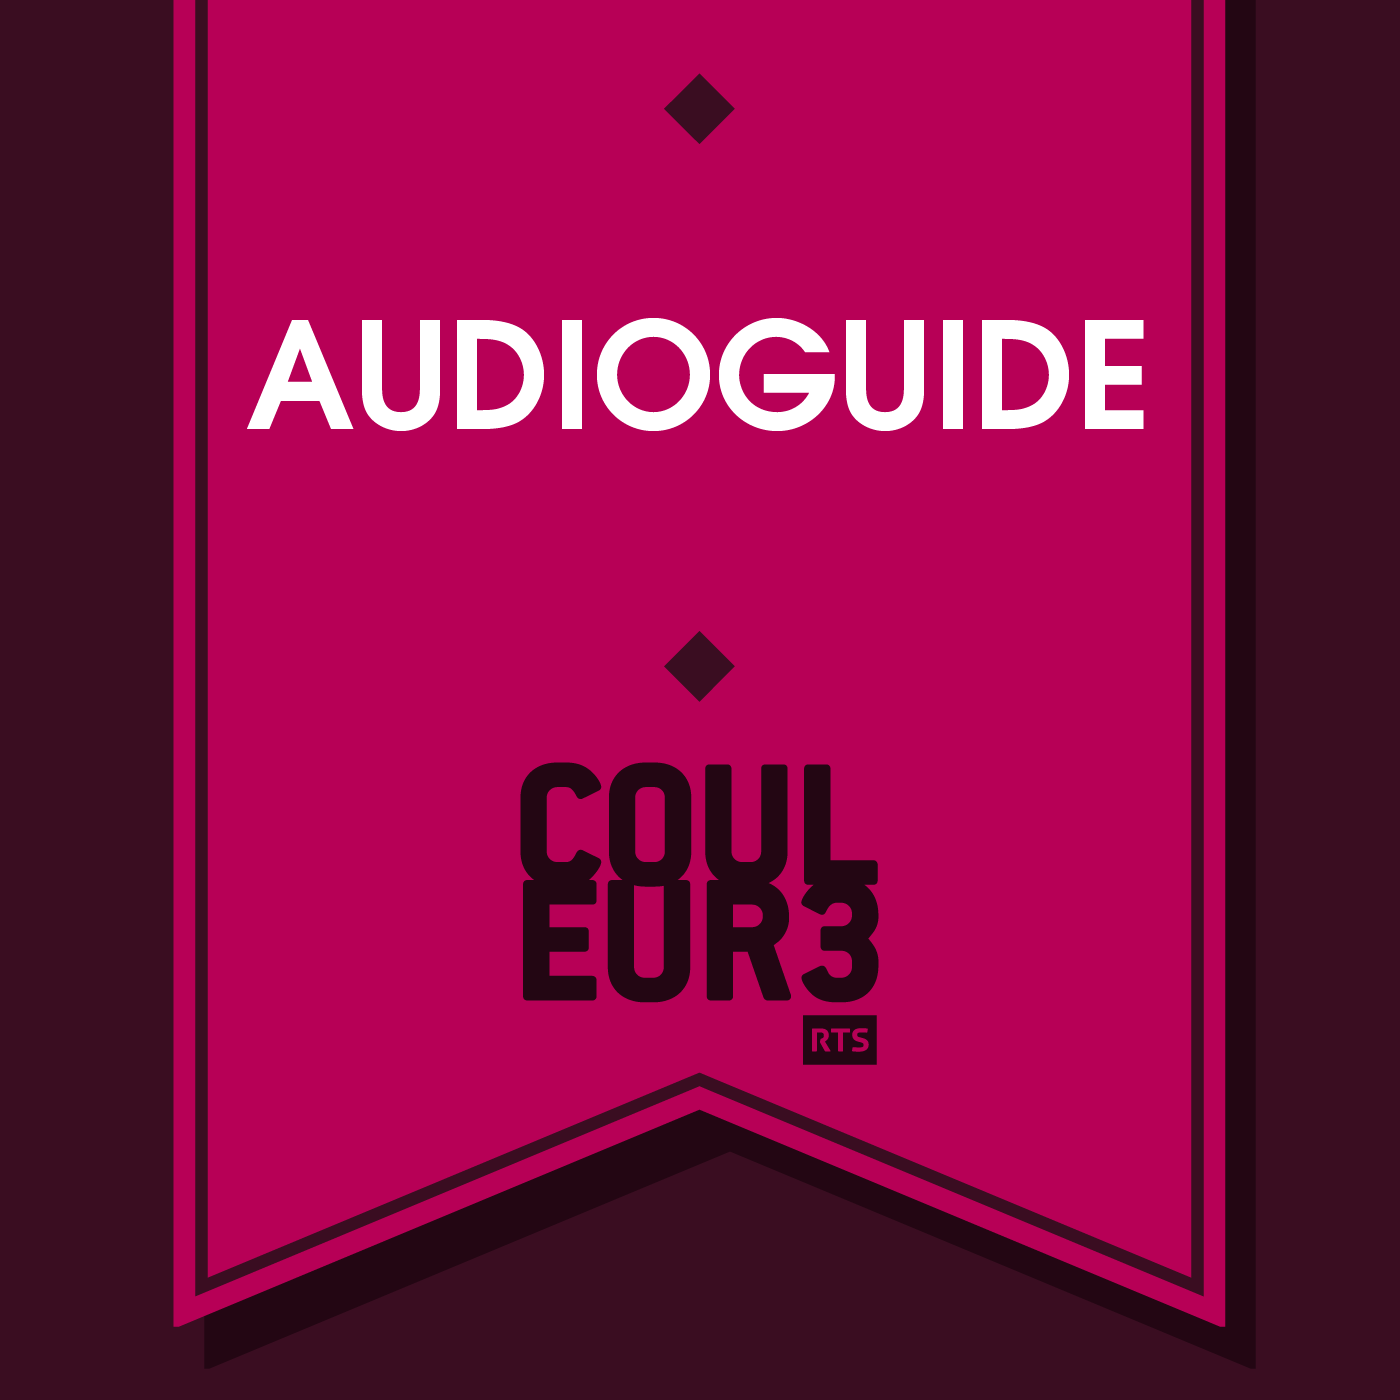 Audioguide - RTS